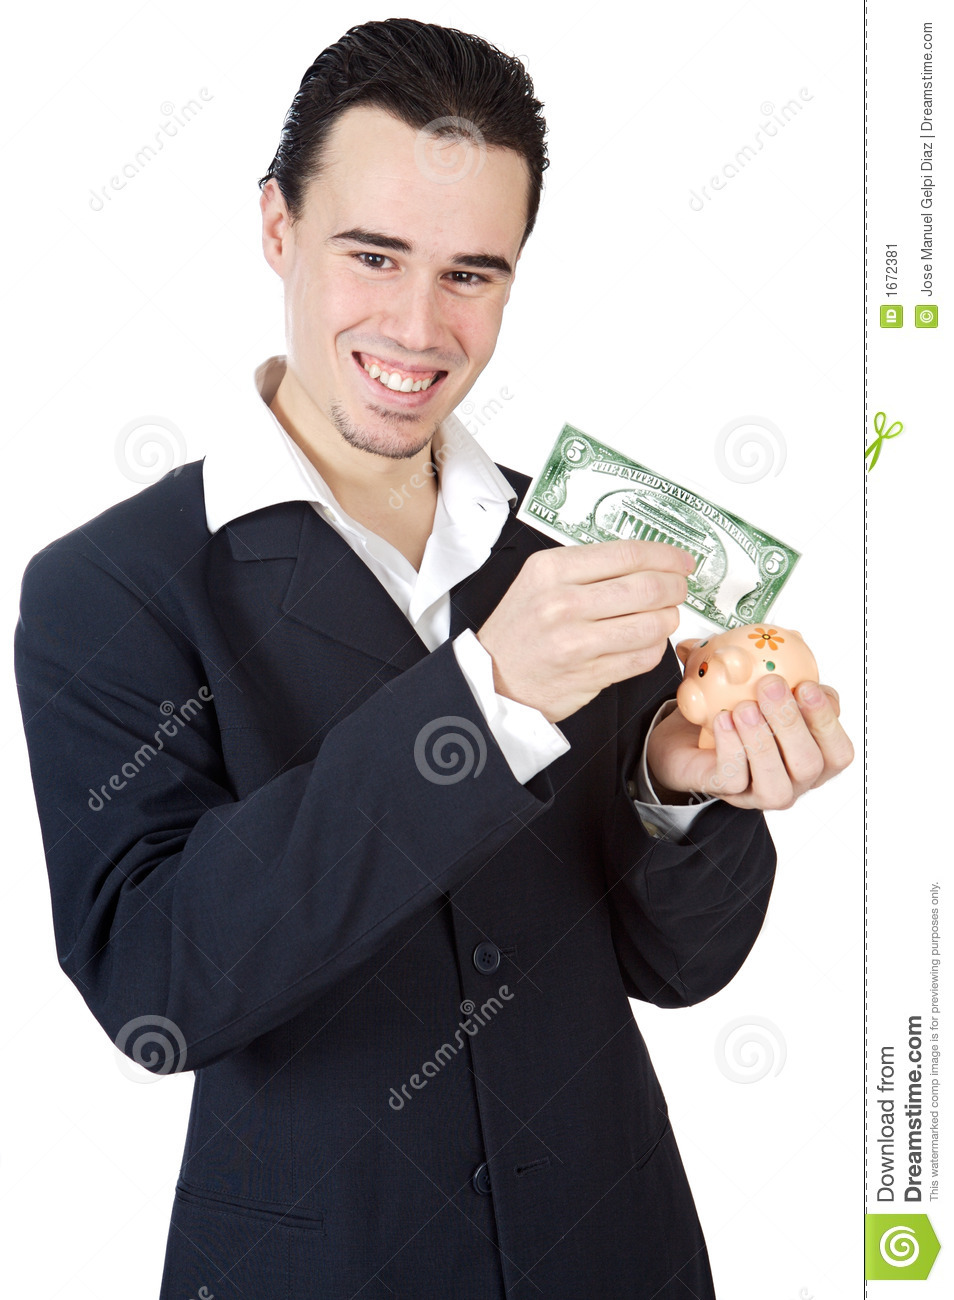 Attractive young person businessman stock image image for Charming personality